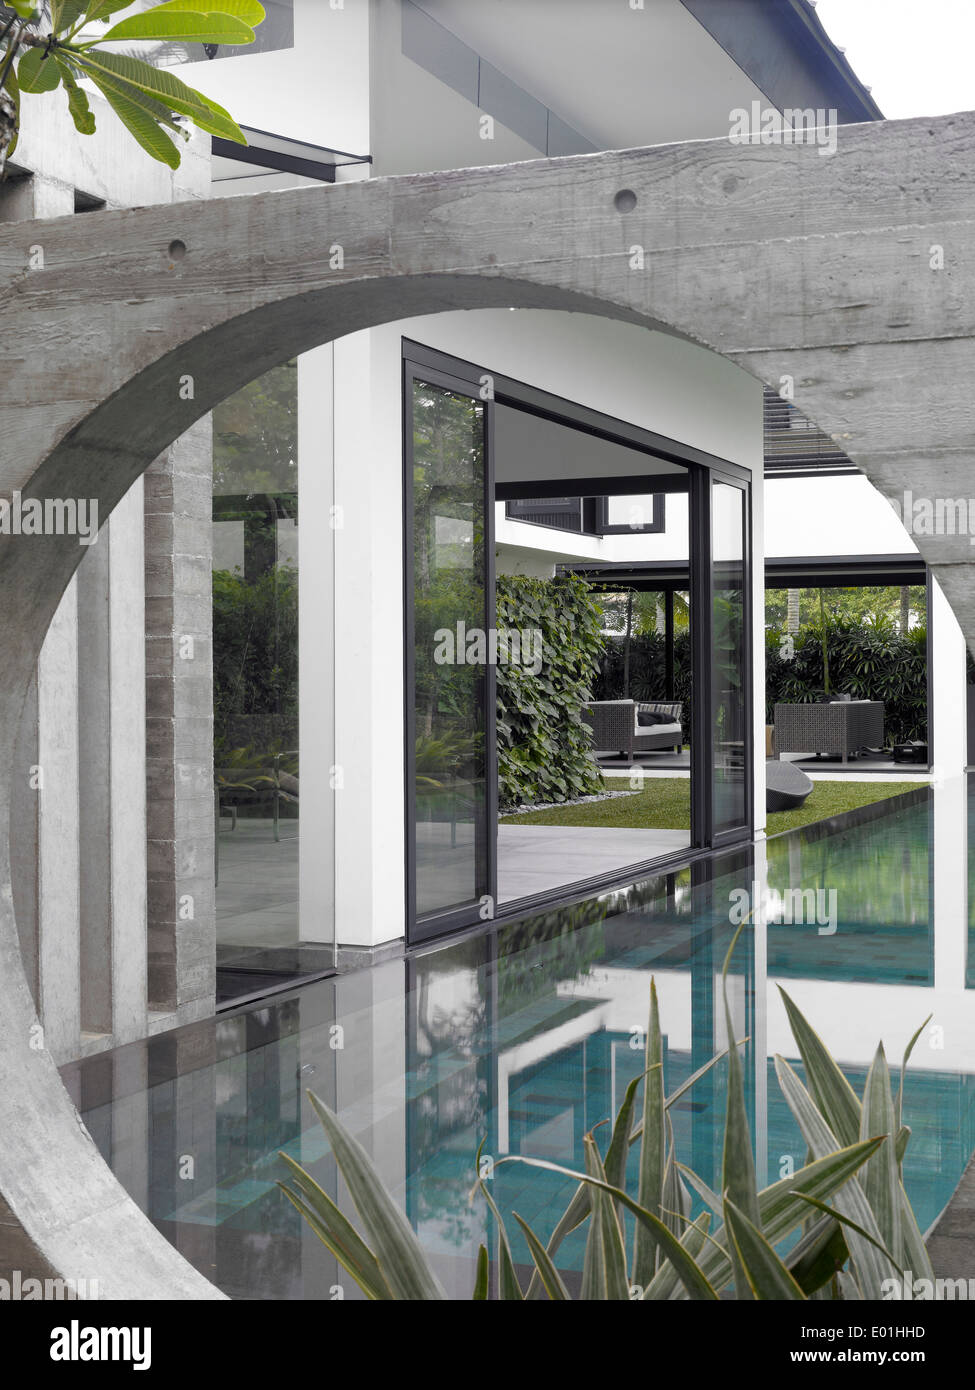 Arched water feature on exterior of modern house swiss for Exterior features of a house